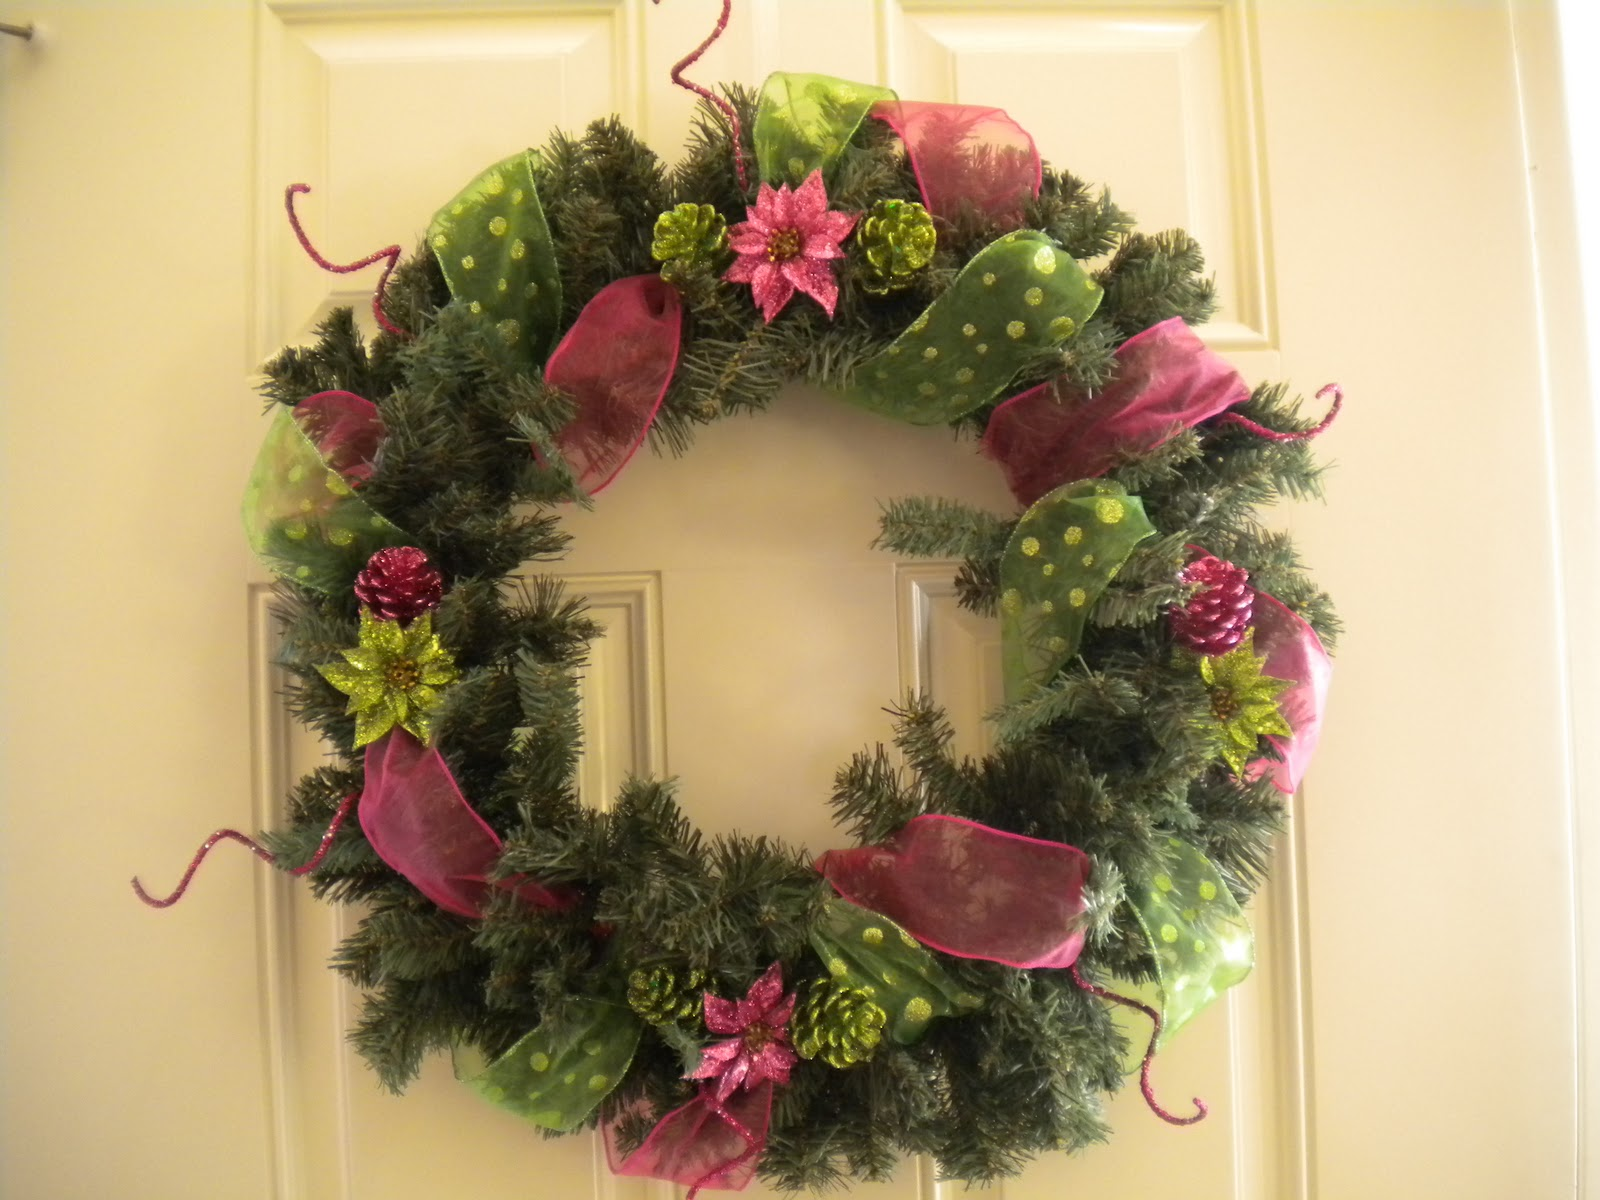 ritzy wreaths christmas wreaths for sale. Black Bedroom Furniture Sets. Home Design Ideas